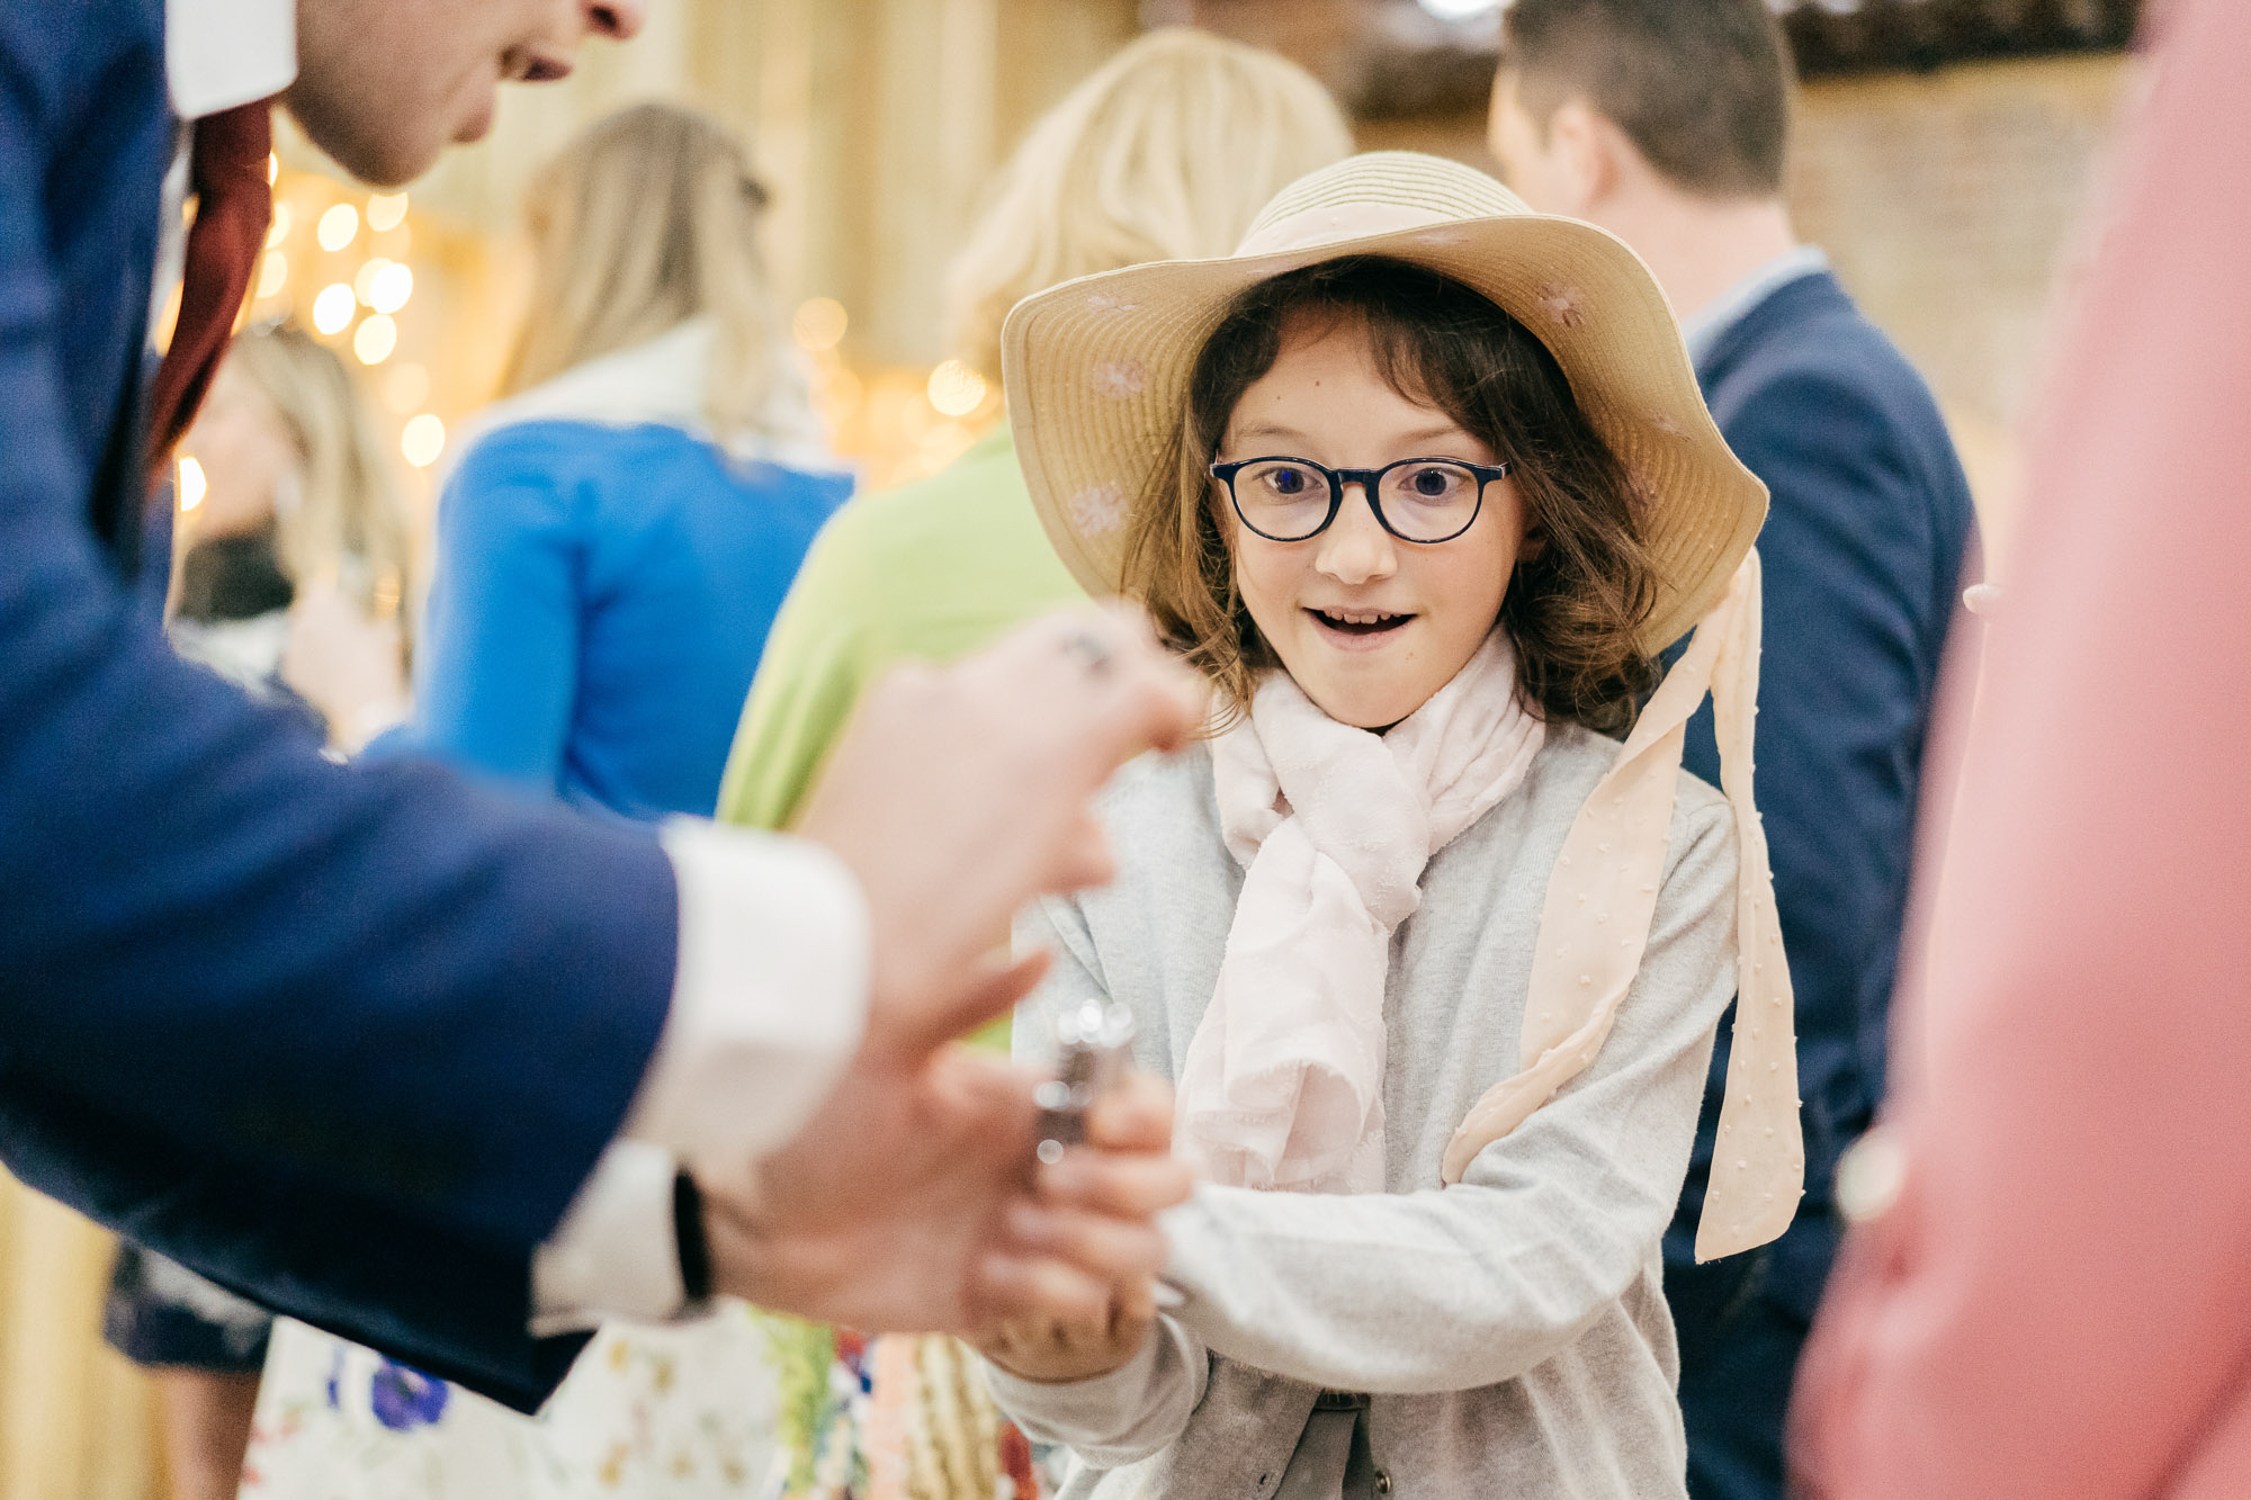 natural wedding photo of child's reaction to magic trick